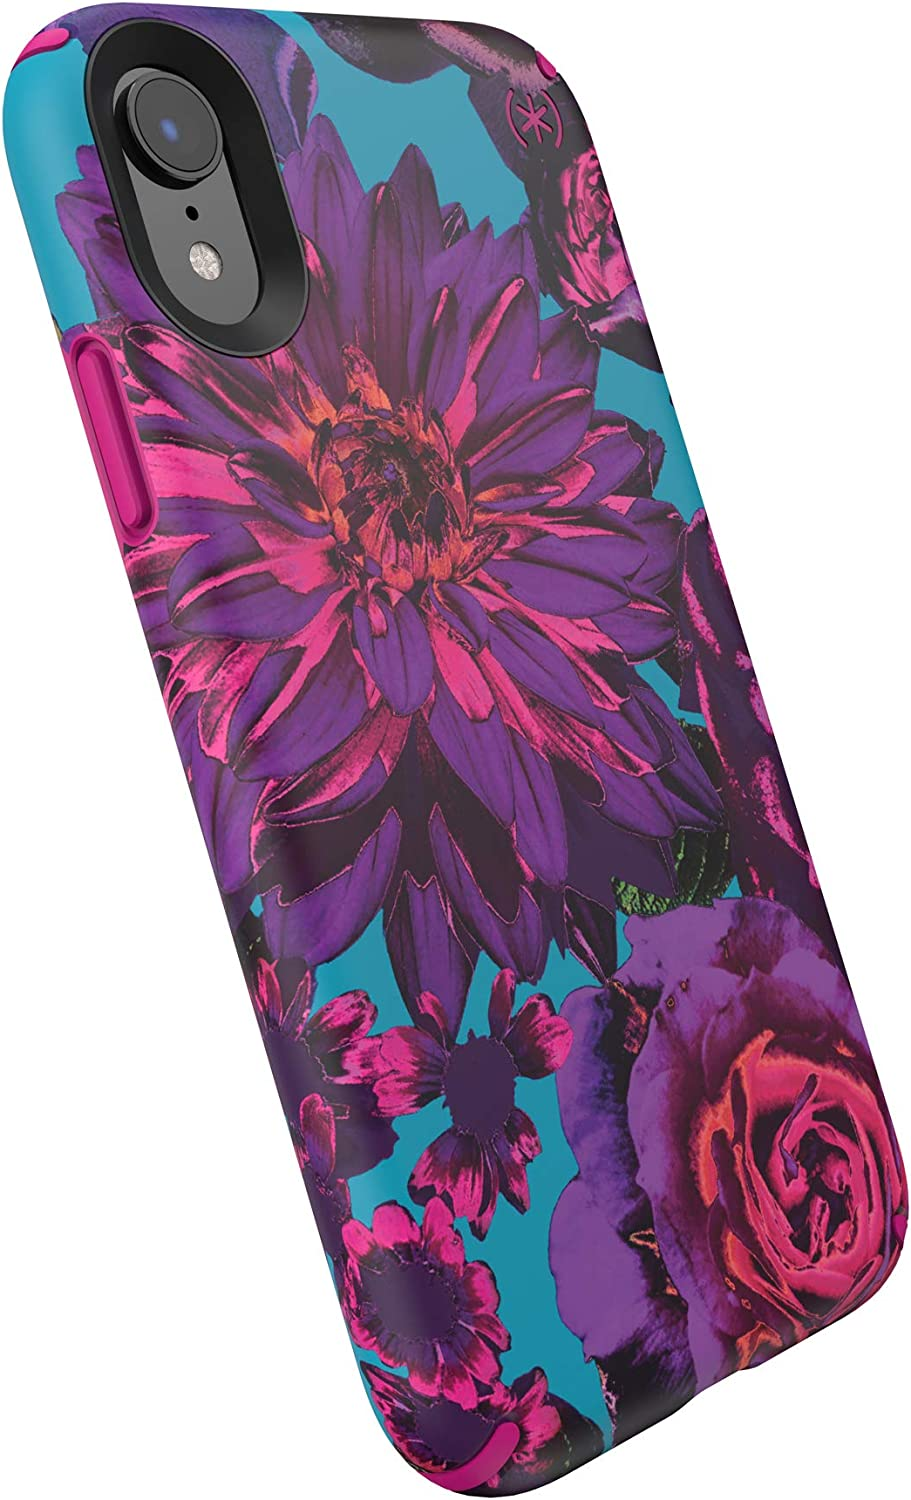 Speck Products 132093-8736 Presidio Inked iPhone XR Case, Hyperbloom/Lipstick Pink